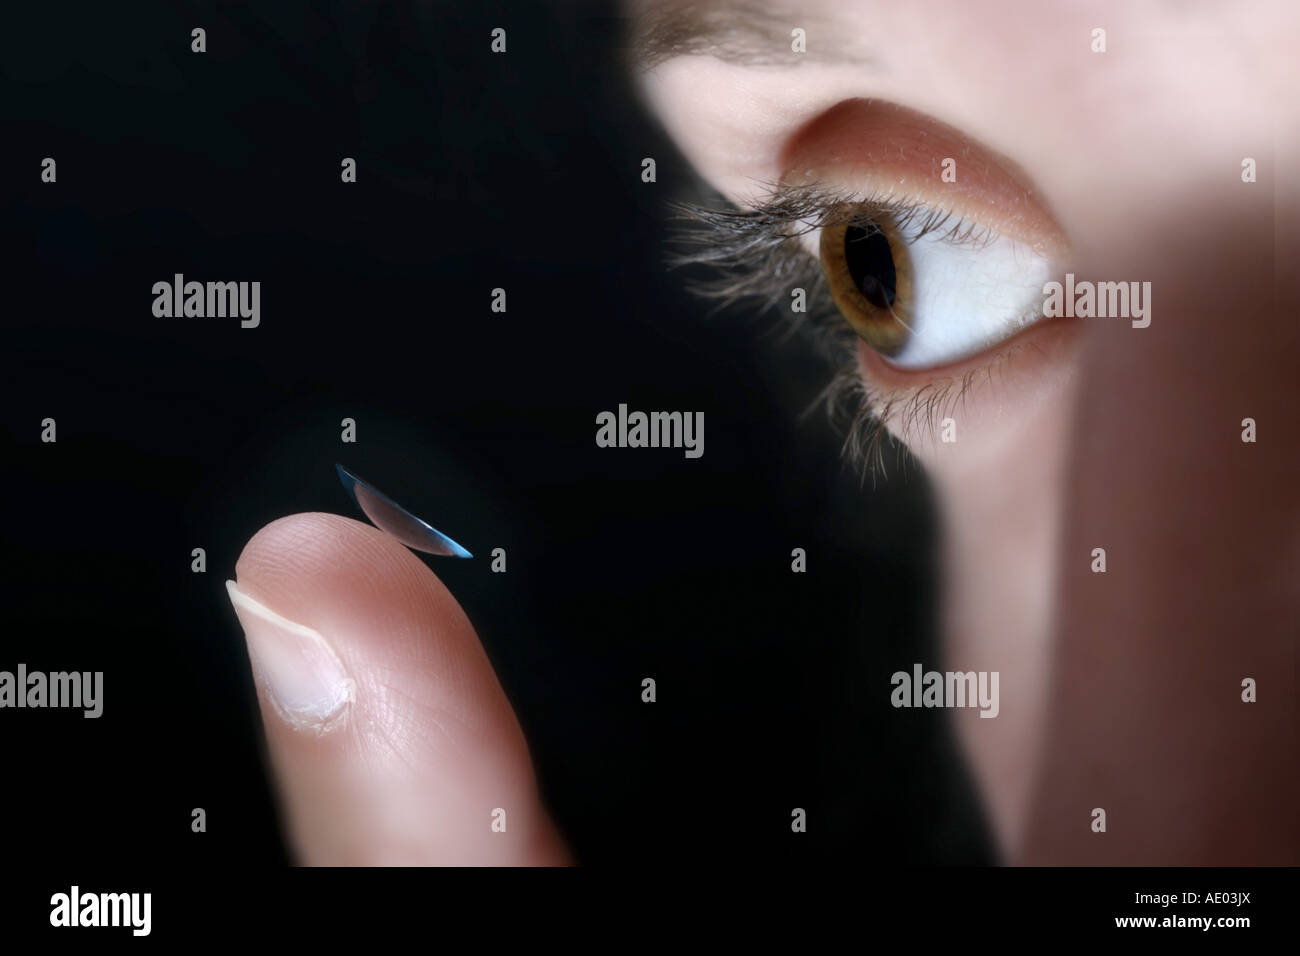 woman putting in contact lenses - Stock Image